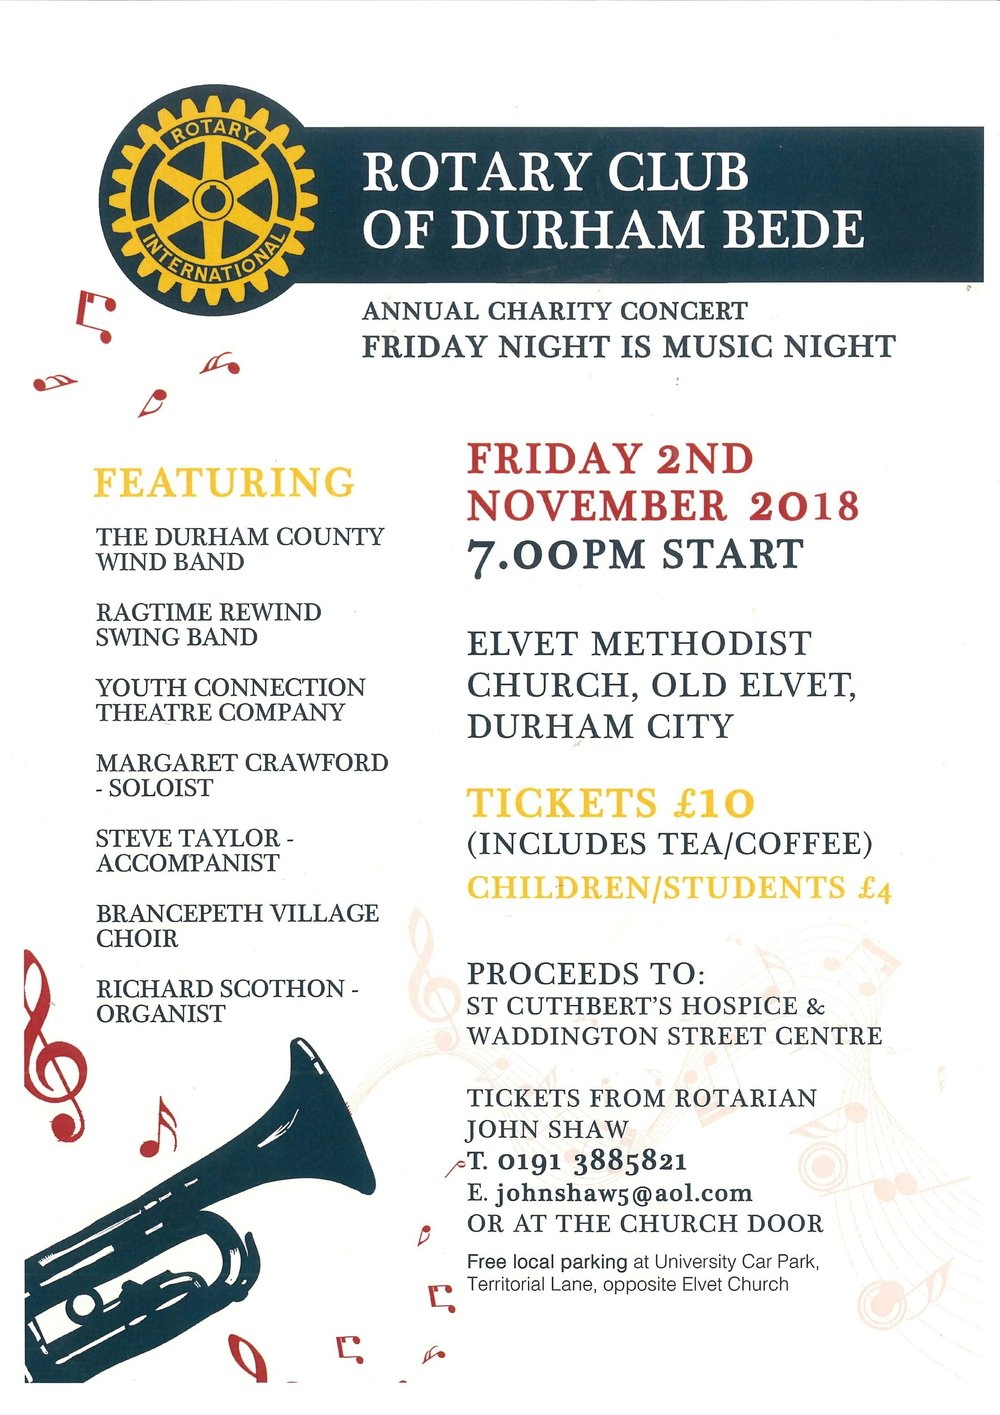 Rotary Club Of Durham Bede Annual Charity Concert Waddington Street